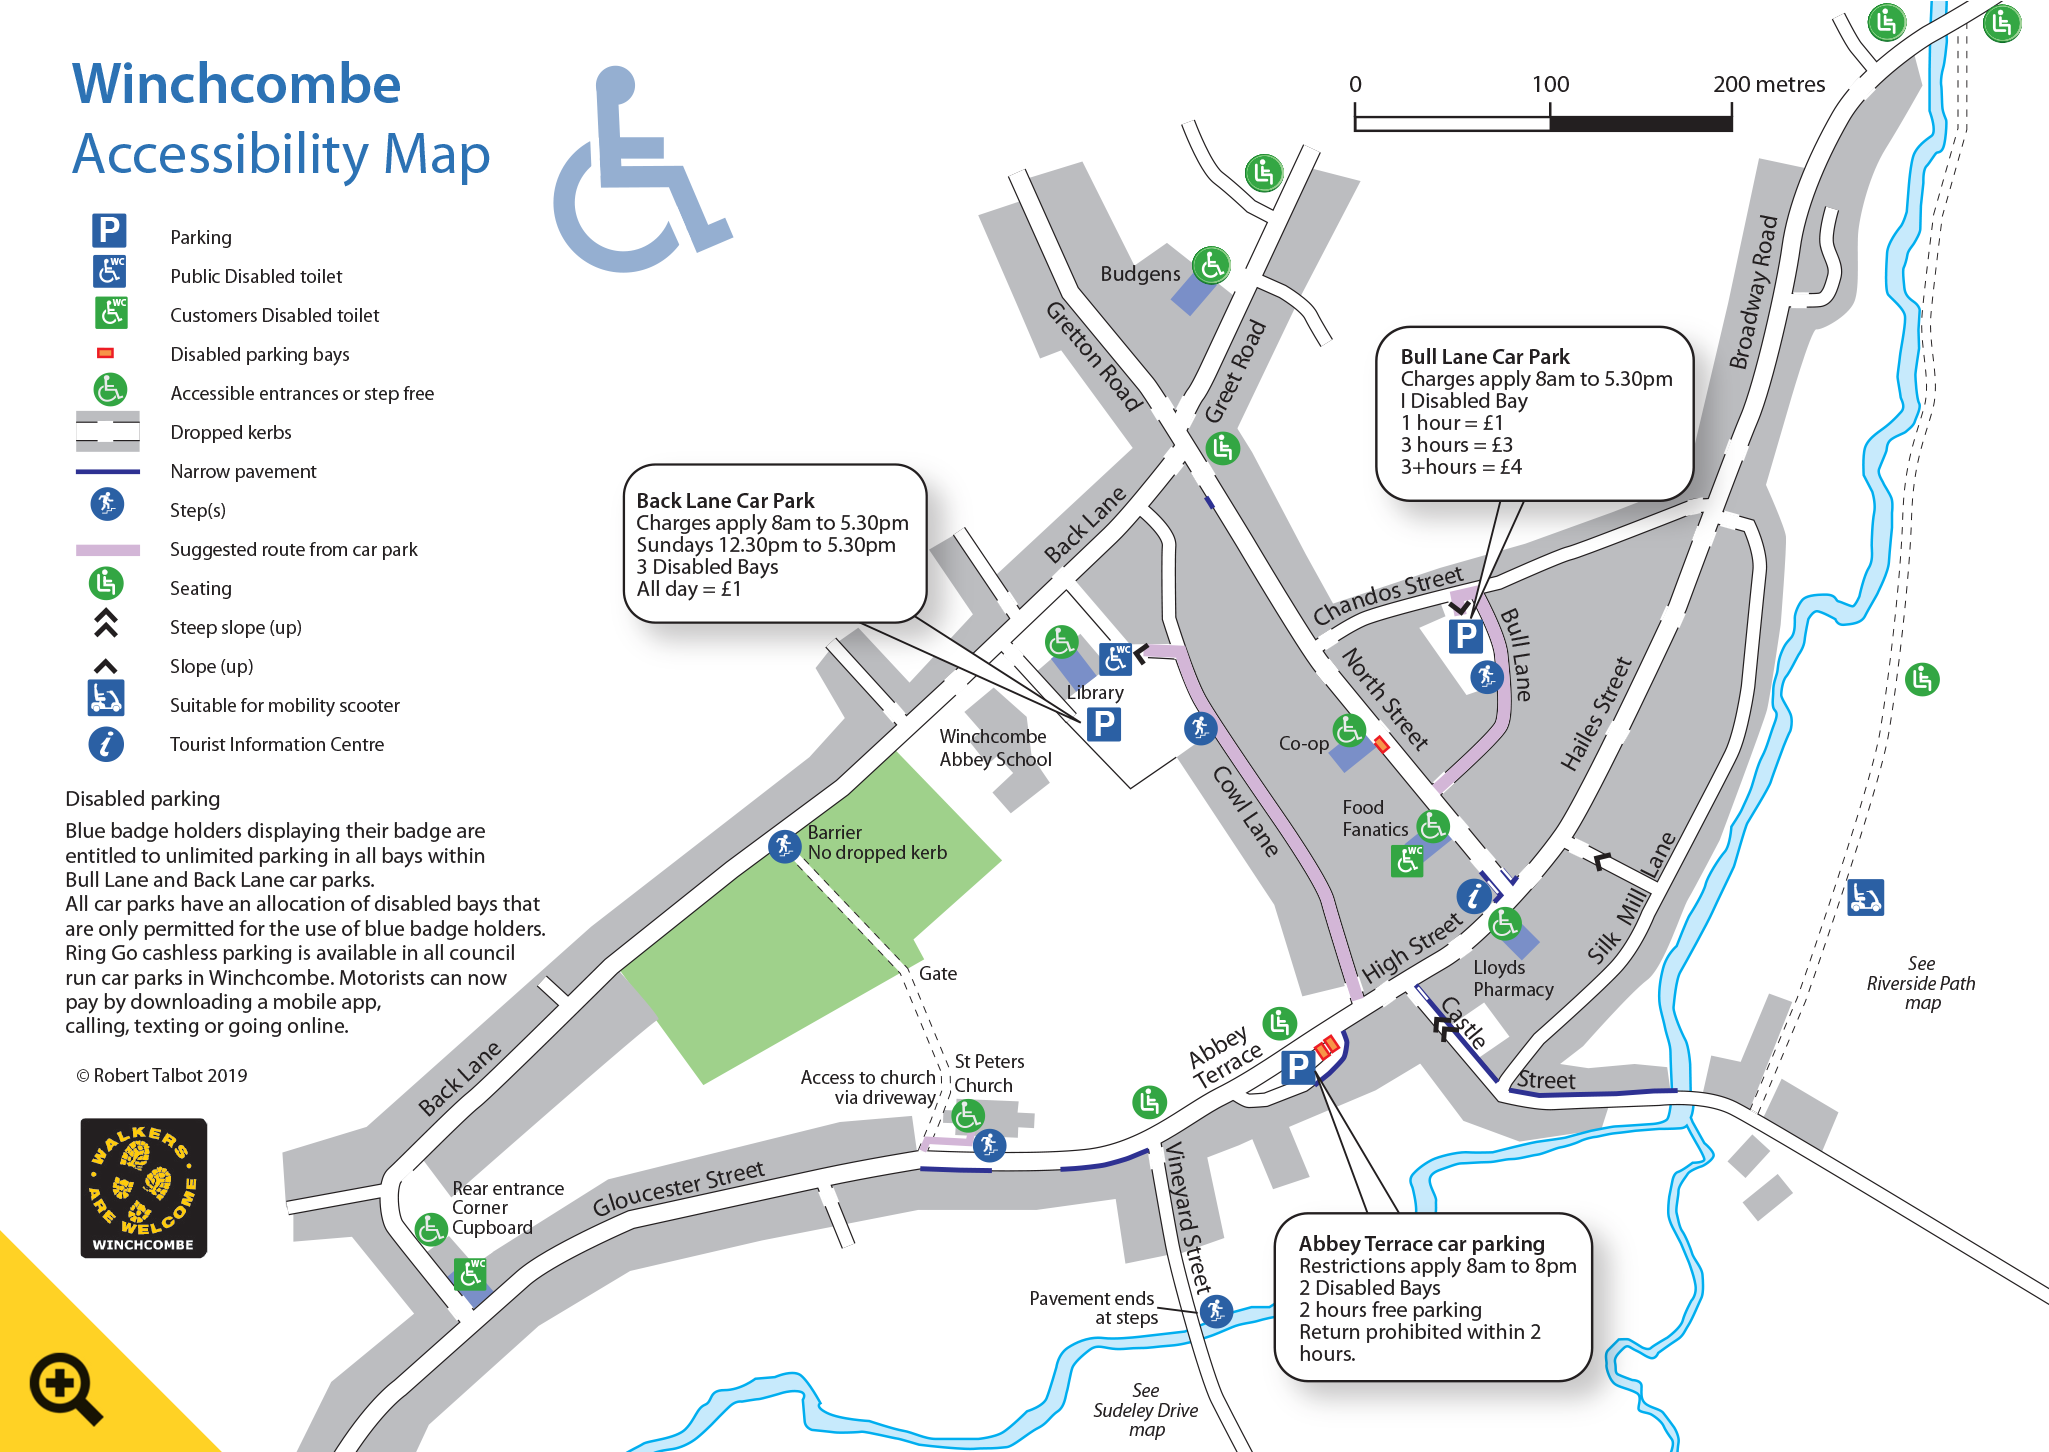 Winchcombe Accessibility Map